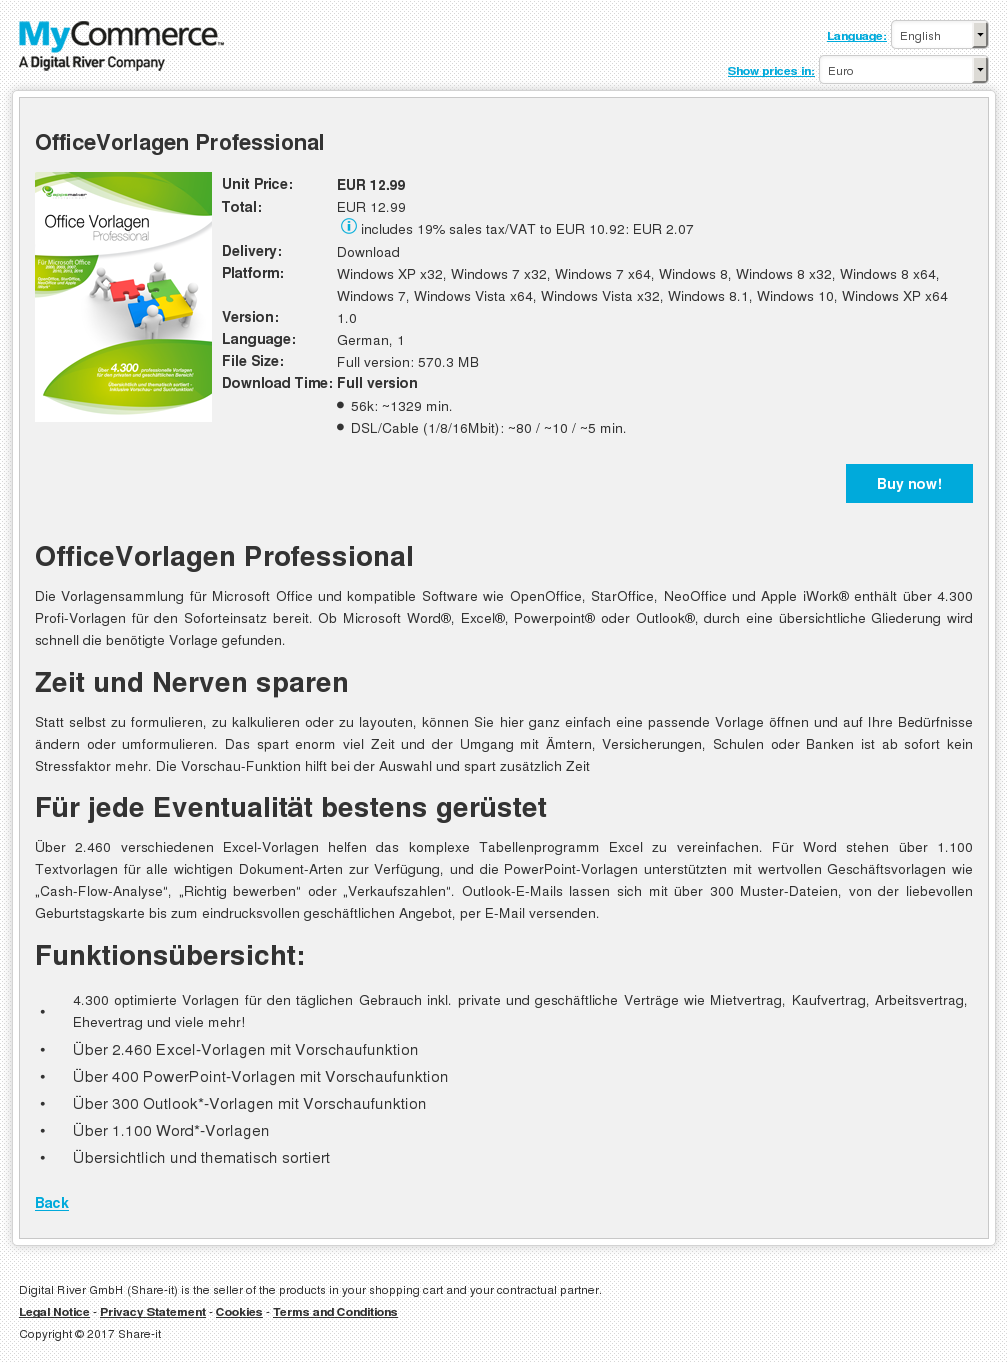 OfficeVorlagen Professional